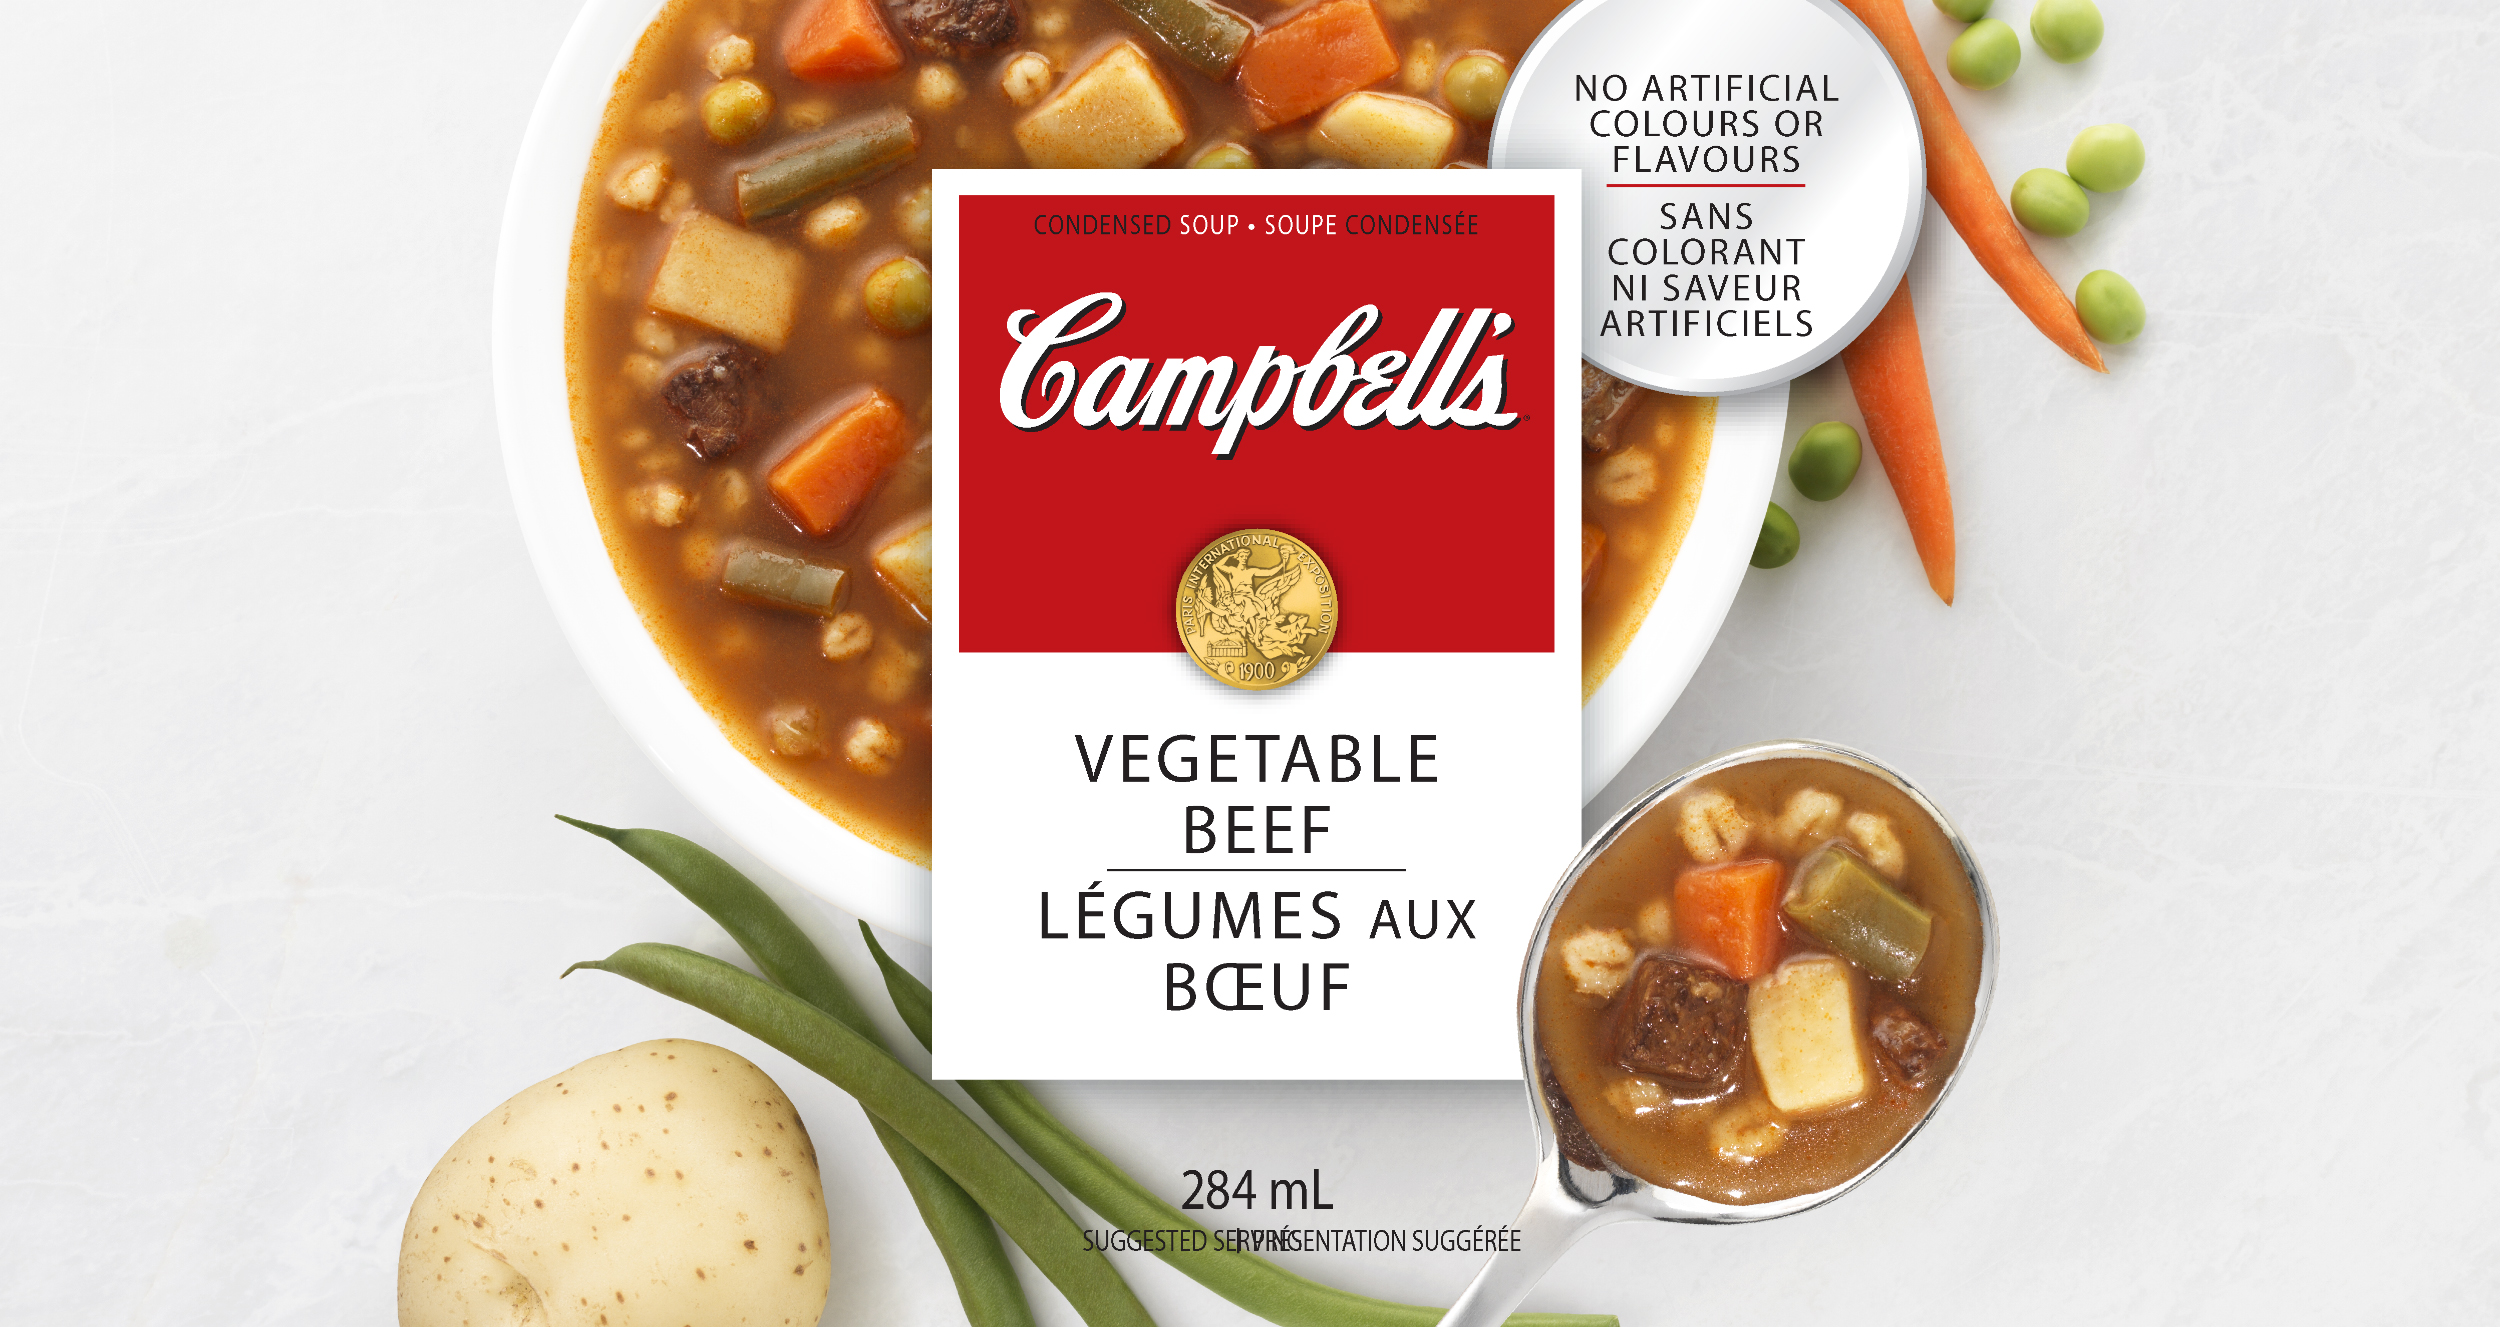 15885 KY R18 Campbell's CDN Condensed Eating_Veg Beef2.jpg